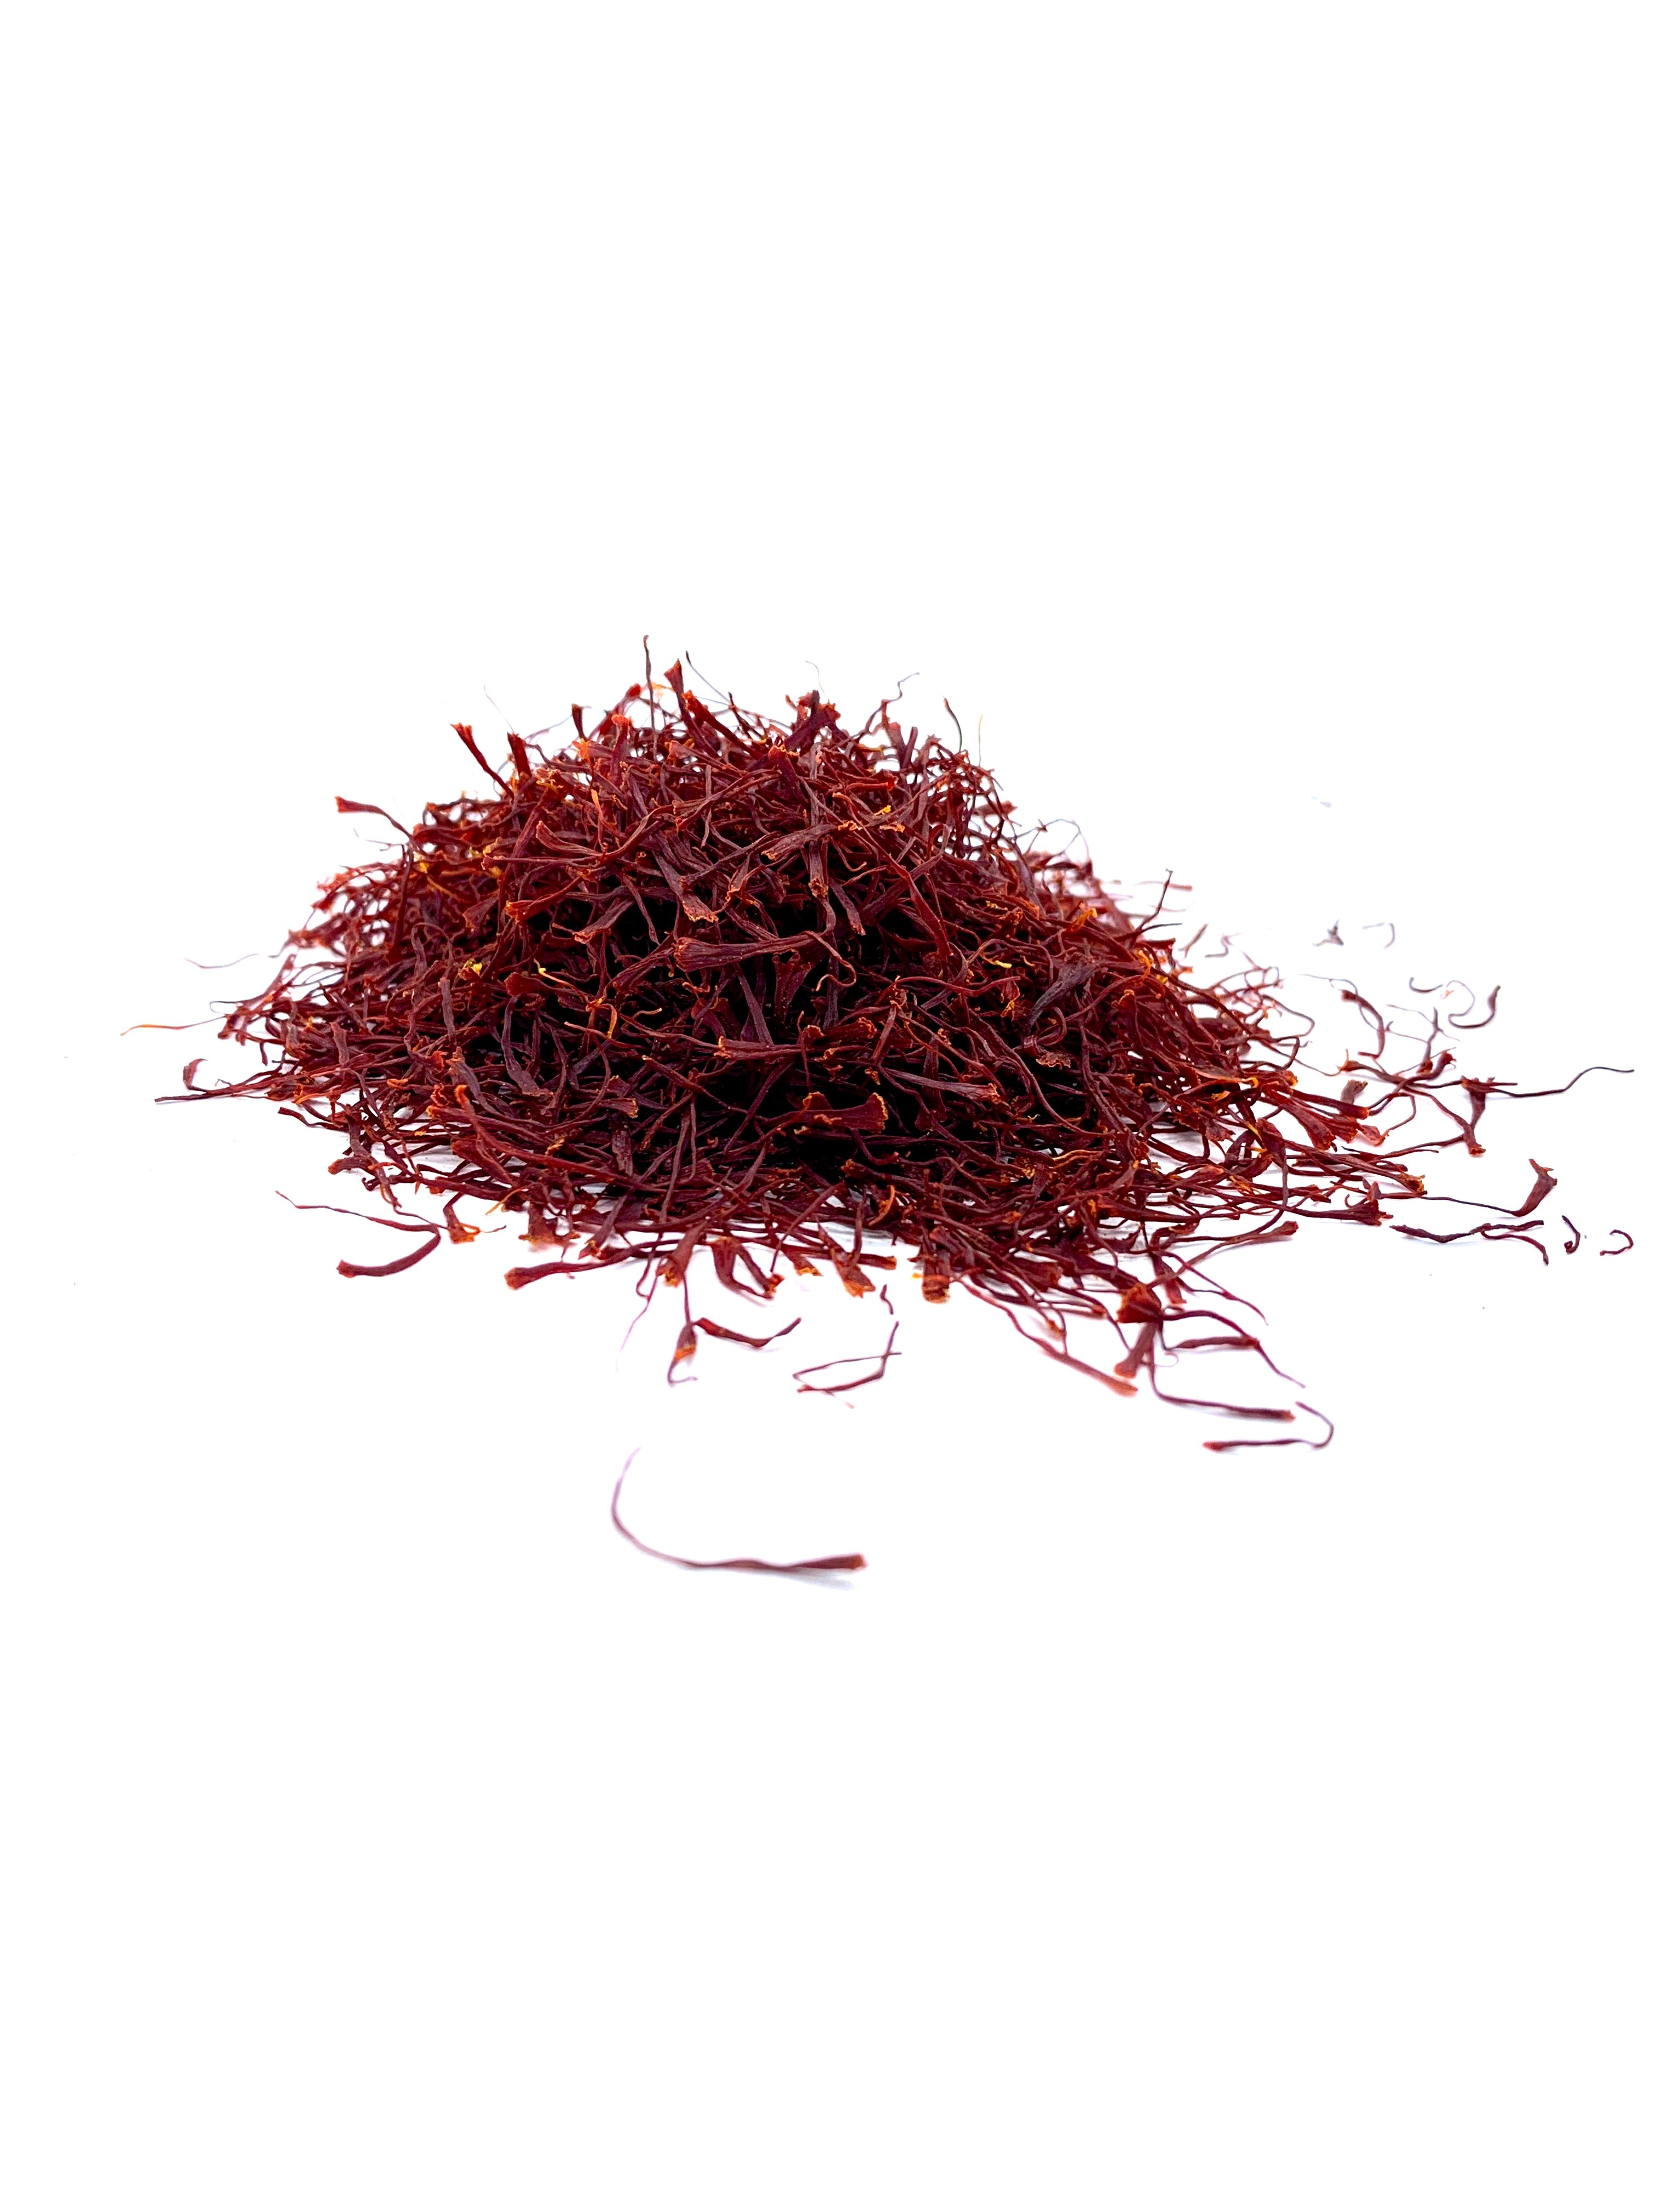 50 grams premium A+(all red) Saffron In bulk